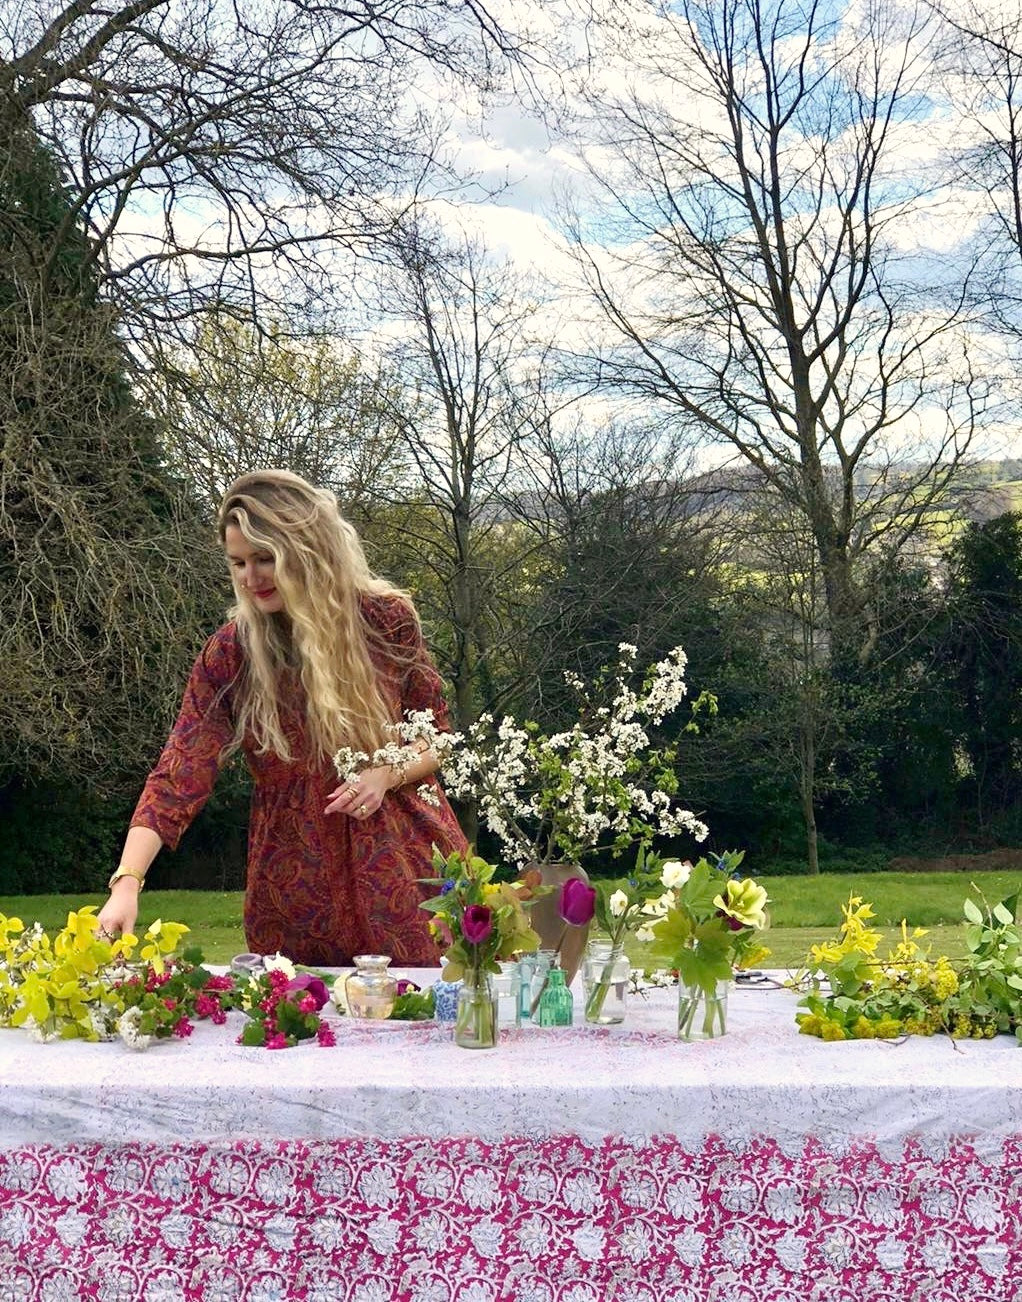 100 Acres - Luxury British All 100% Natural Botanical Bath & Body Products & Gifts - Ellea Whamond